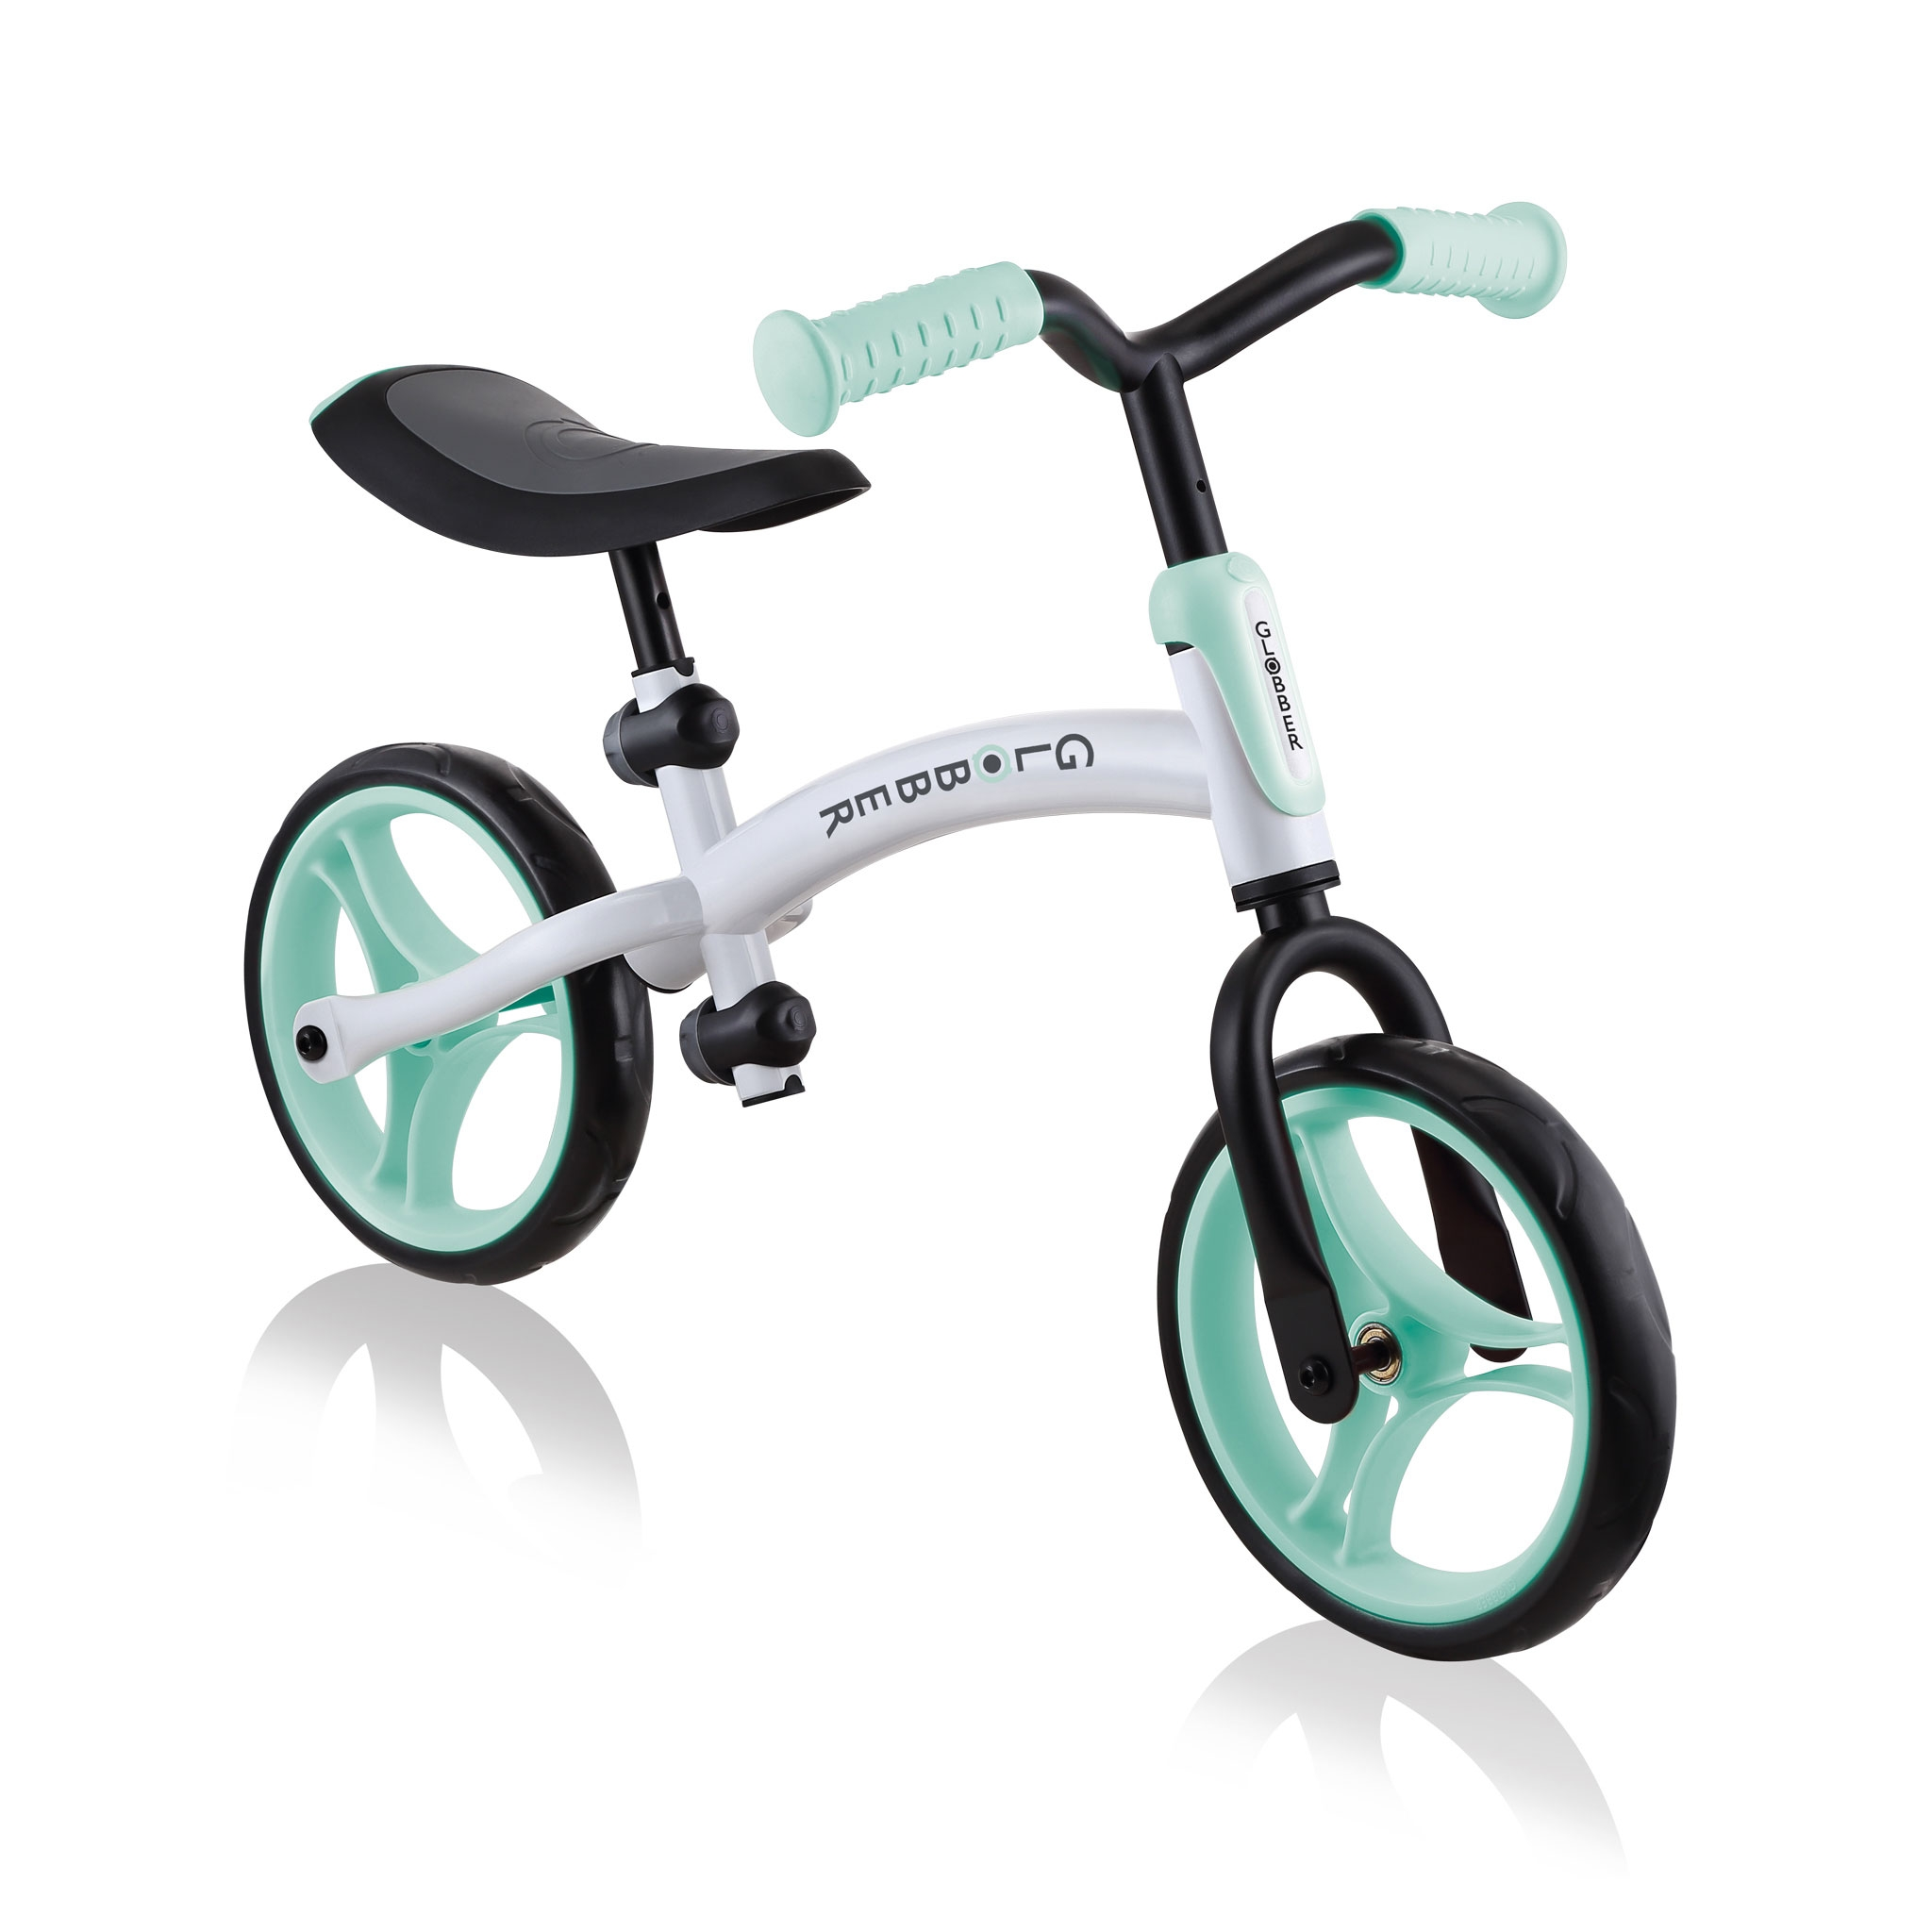 GO-BIKE-DUO-toddler-balance-bike-with-reversible-frame_lime-green_